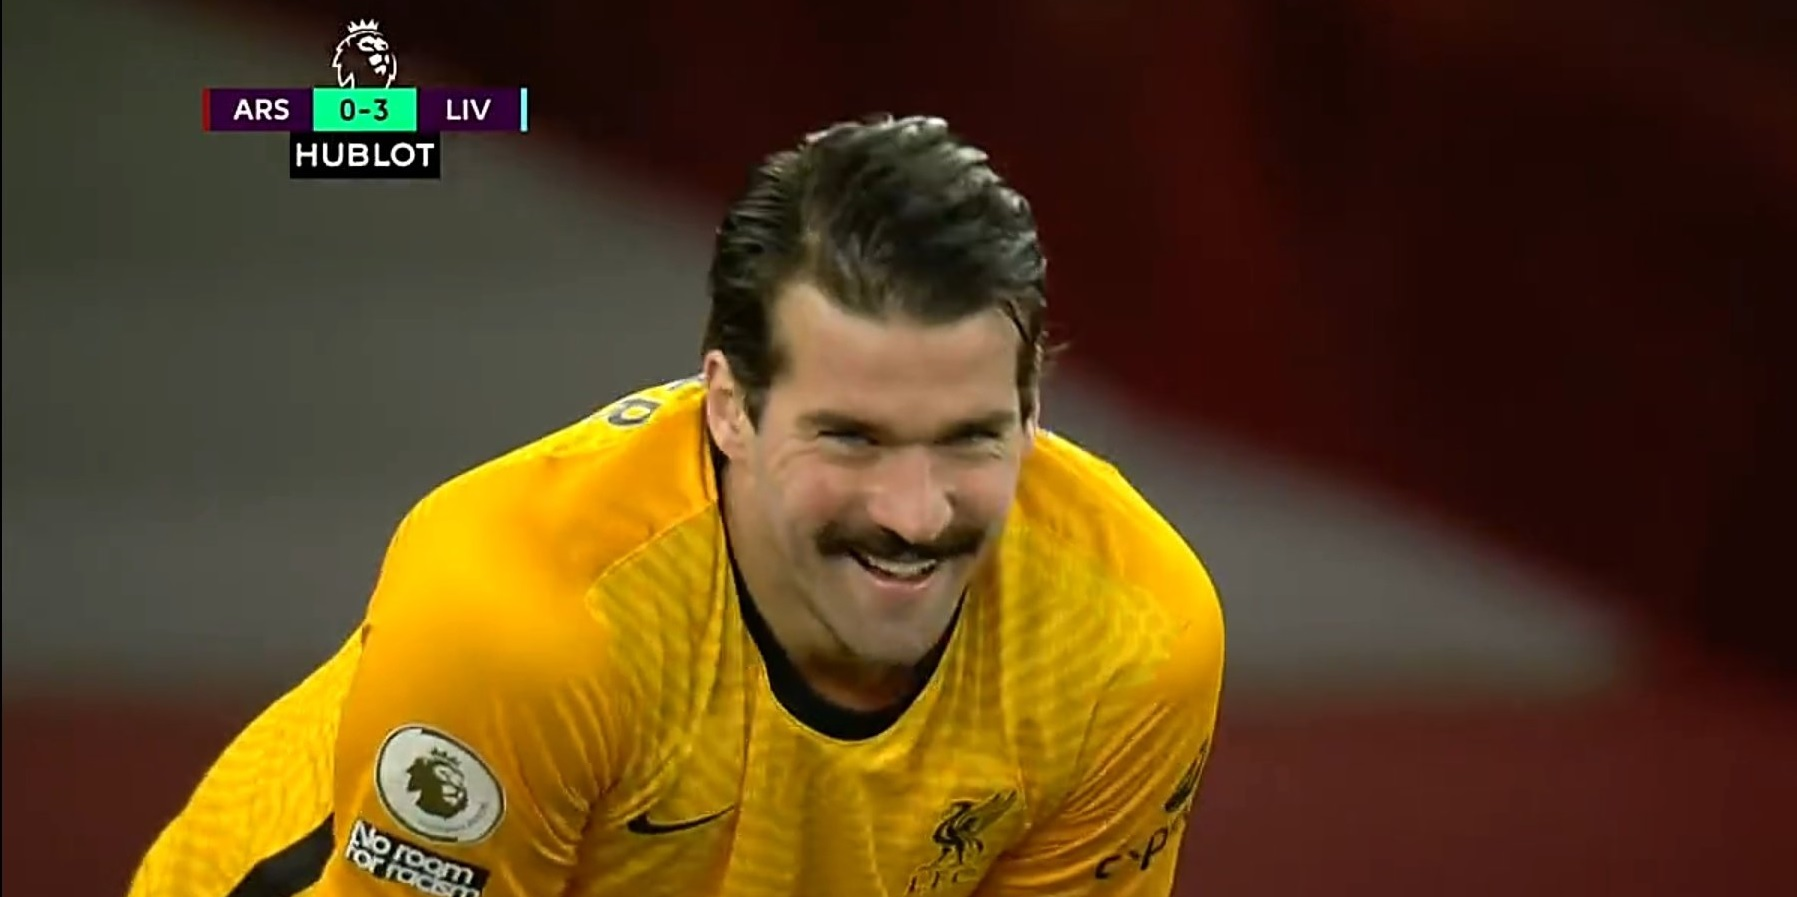 Alisson's new look brought up in Arsenal fan's hilarious thread reaction to 3-0 thumping